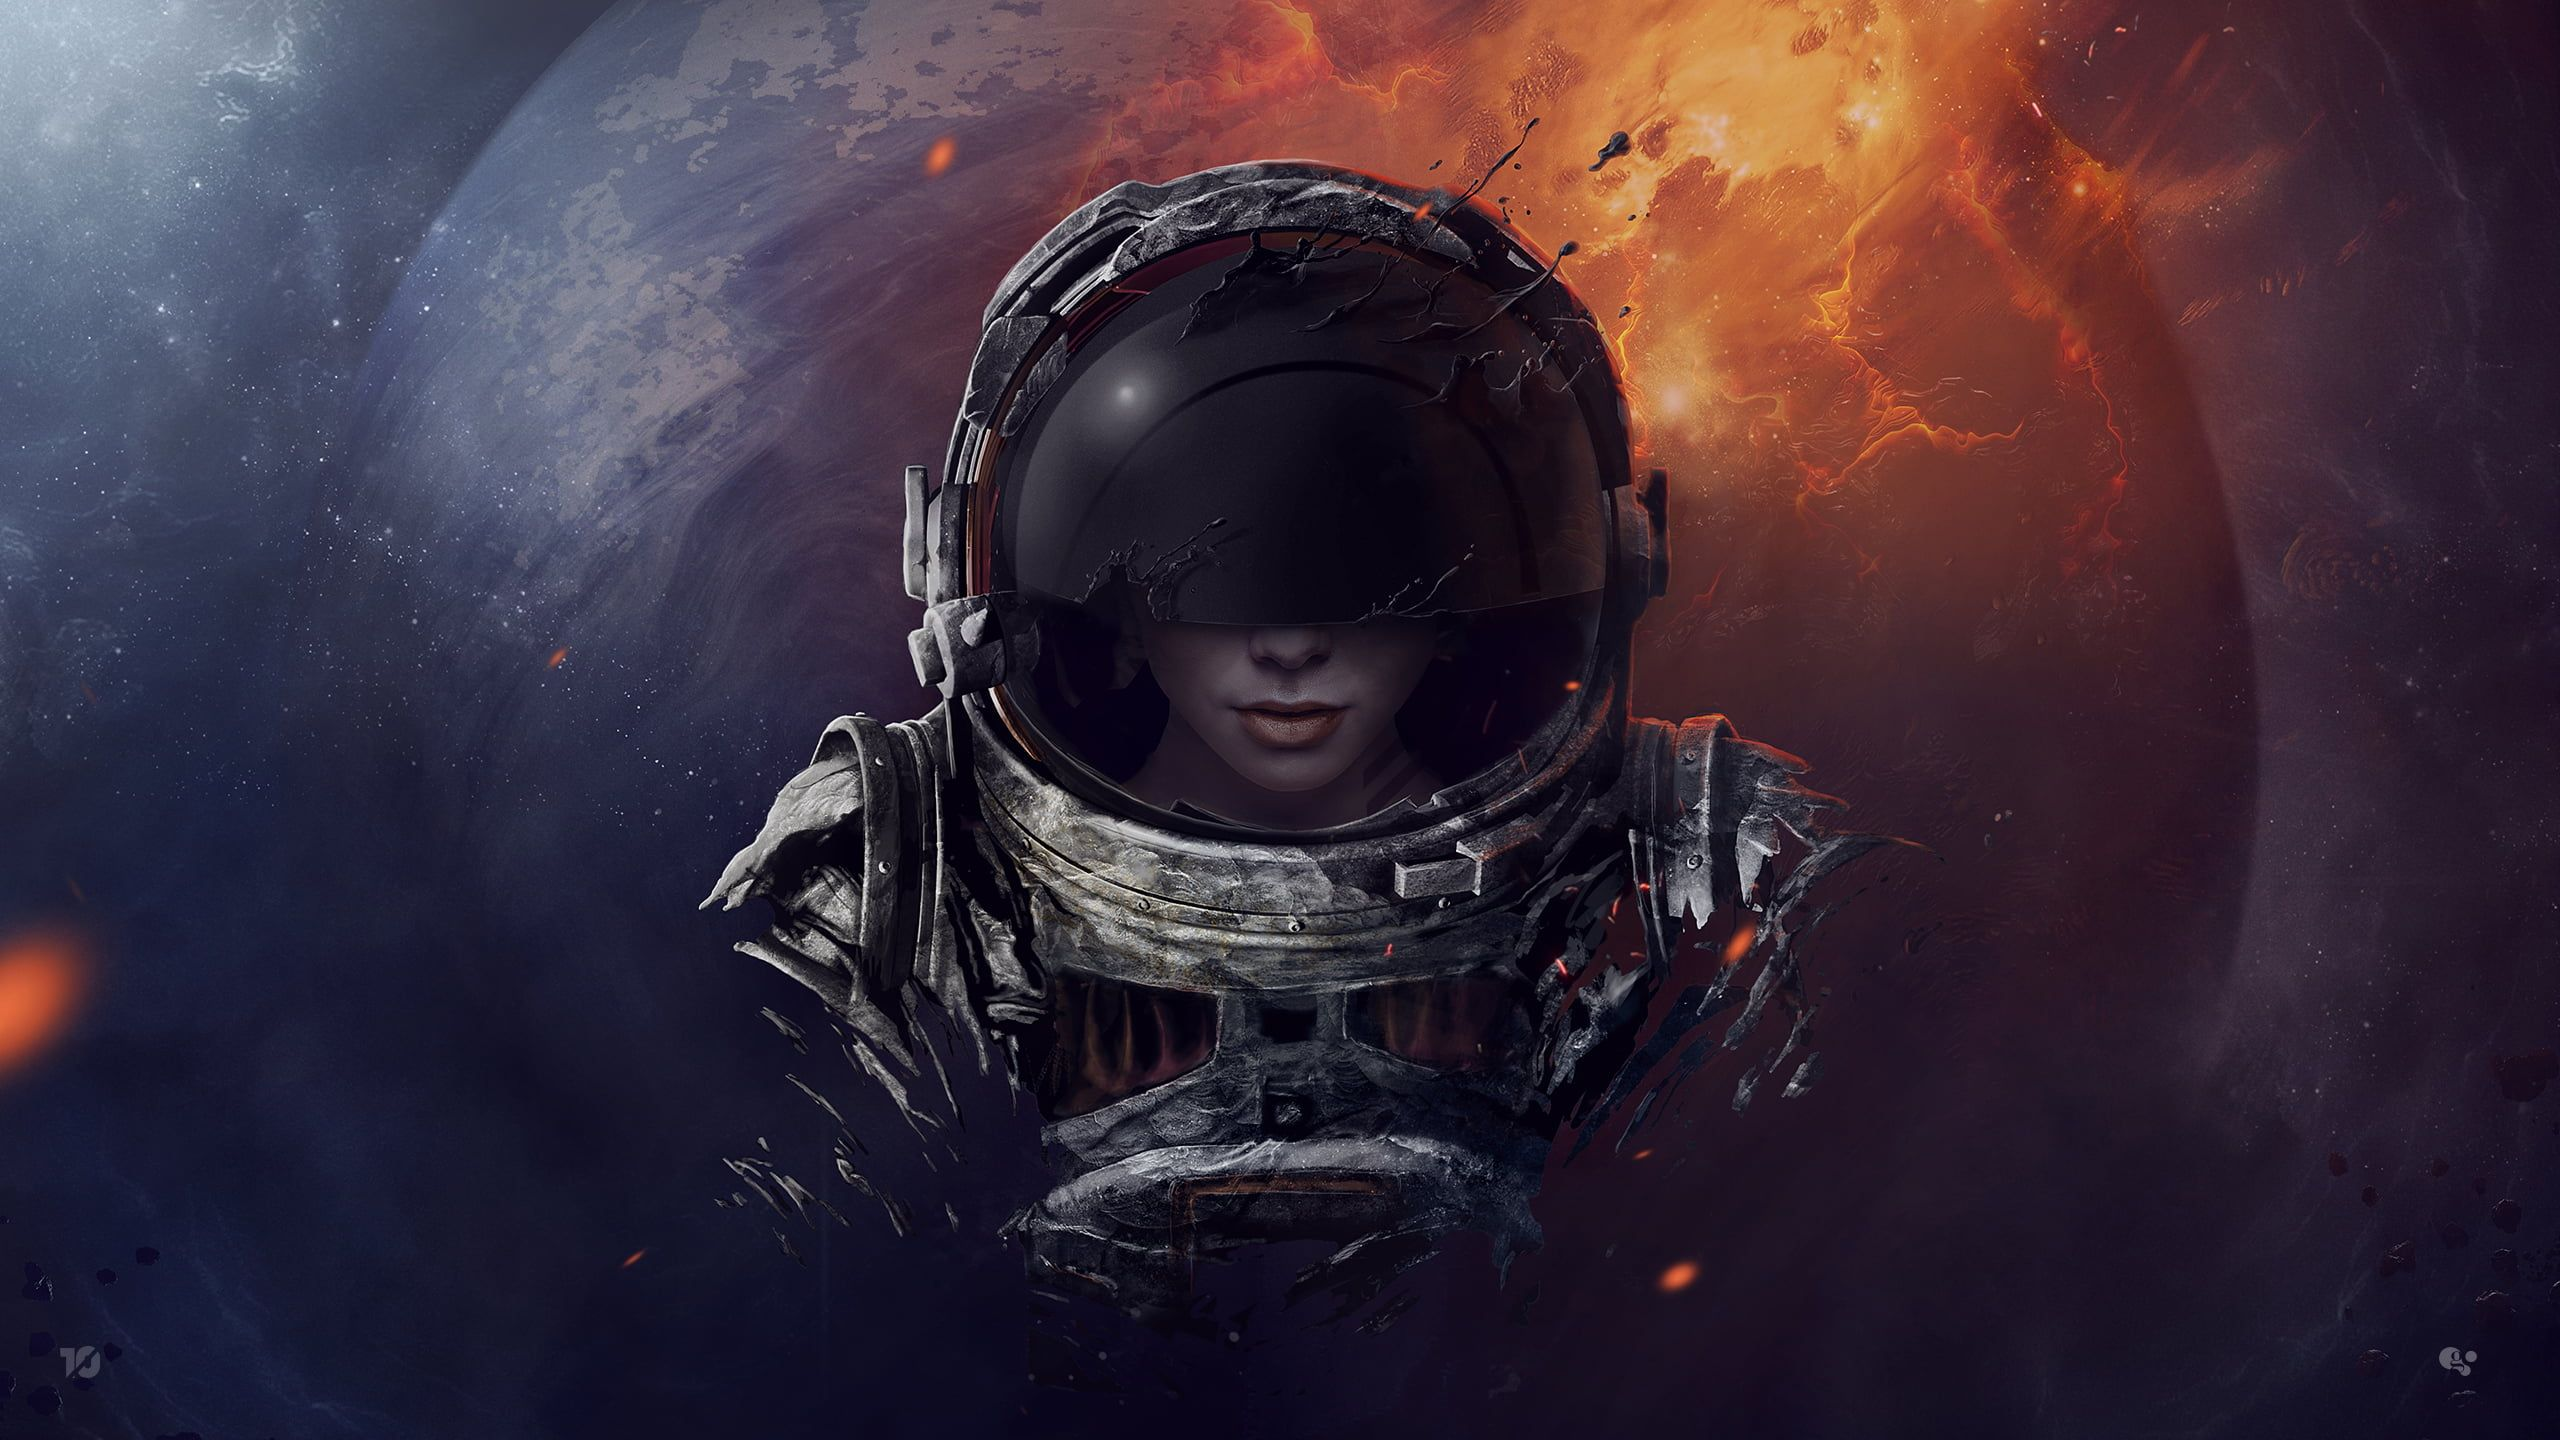 Astronaut Digital Wallpaper Astronaut Digital Wallpaper Astronaut Space Fantasy Art Planet Spacesuit A Astronaut Wallpaper Photoshop Wallpapers Photoshop